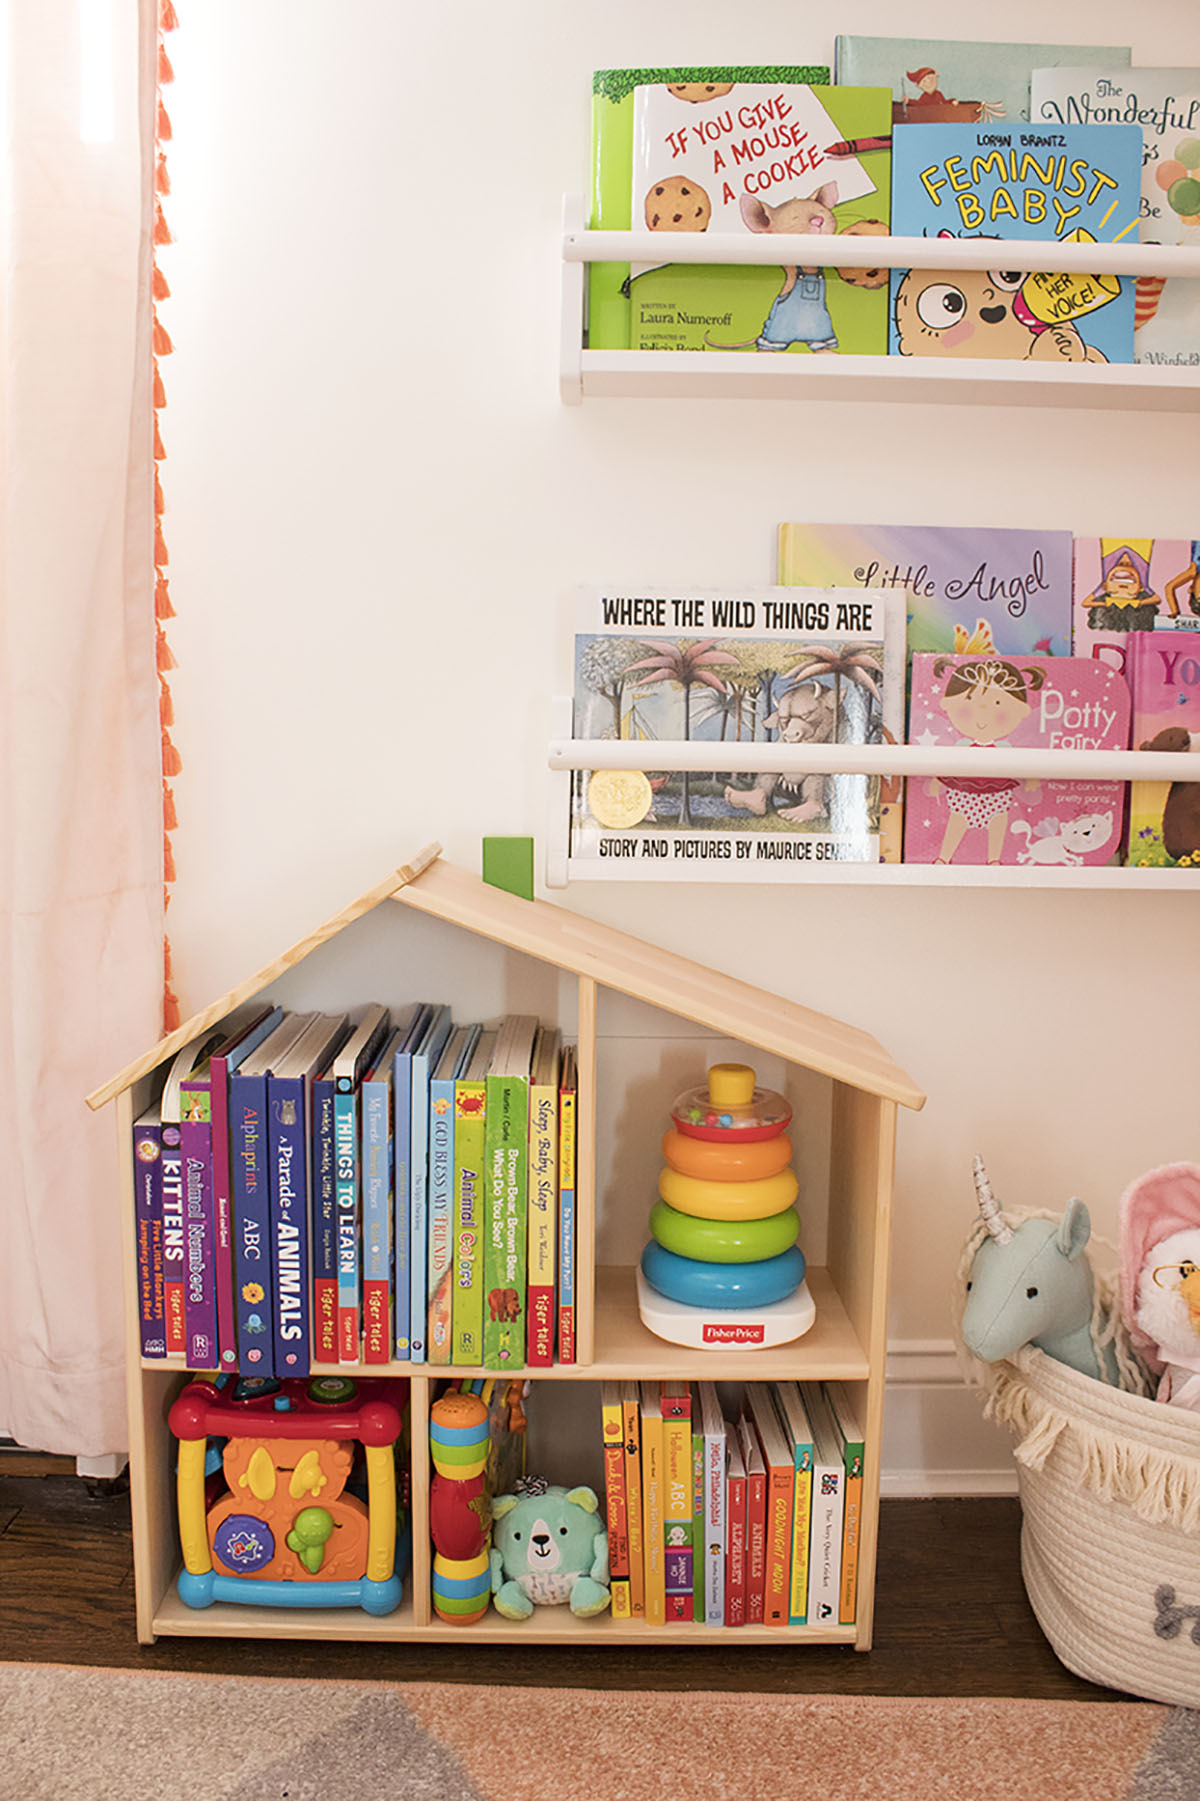 Looking for some nursery organization ideas? Check out this colorful and affordable nursery tour! From the closet to the dressers, I'll show you where to store all of baby's essentials. #nurseyorganizationideas #nurseryorganizationhacks #nurserybookshelf